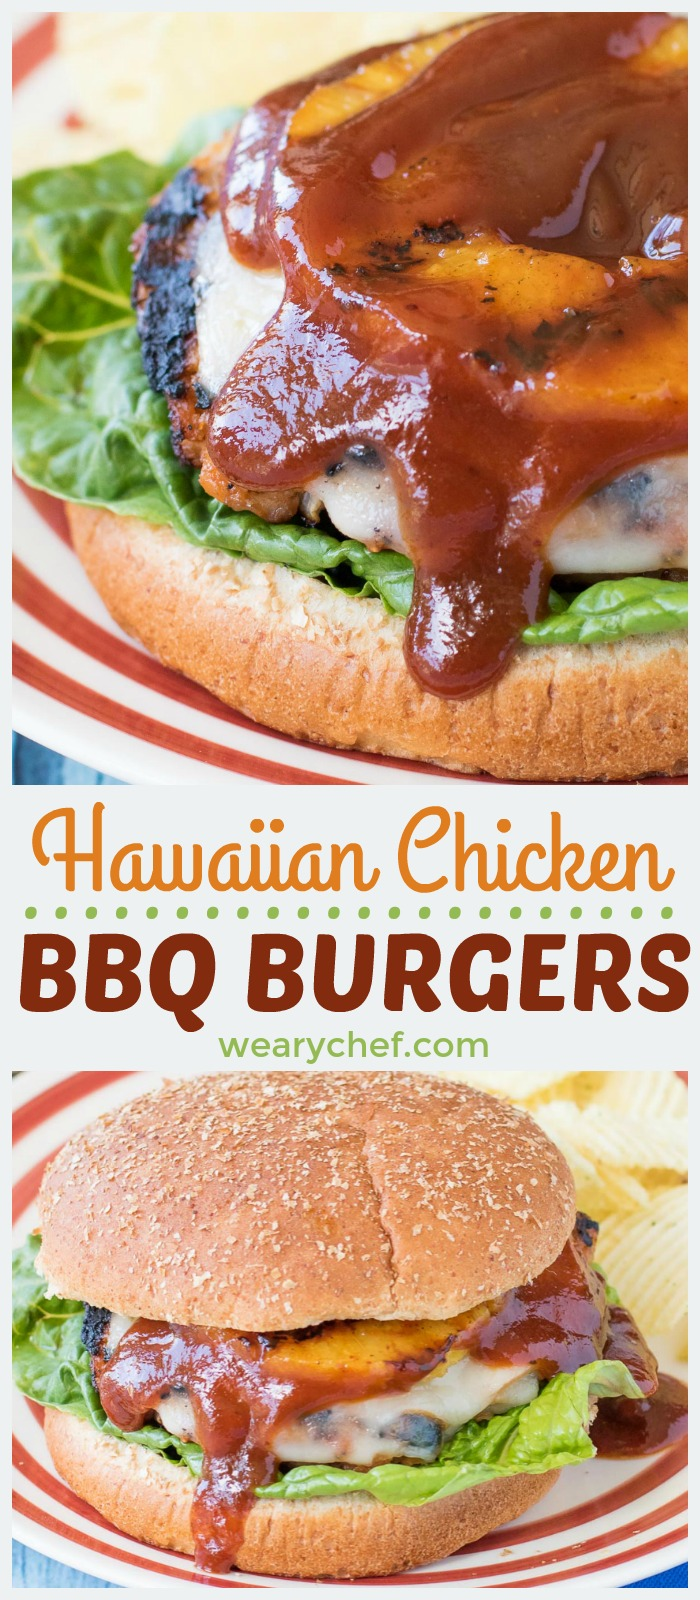 These sweet and savory Hawaiian Chicken BBQ Burgers will take your cookout to the next level! Seasoned chicken burgers are topped with sliced ham, melted cheese, a pineapple ring, and a generous drizzle of BBQ sauce. The flavor is out of this world!